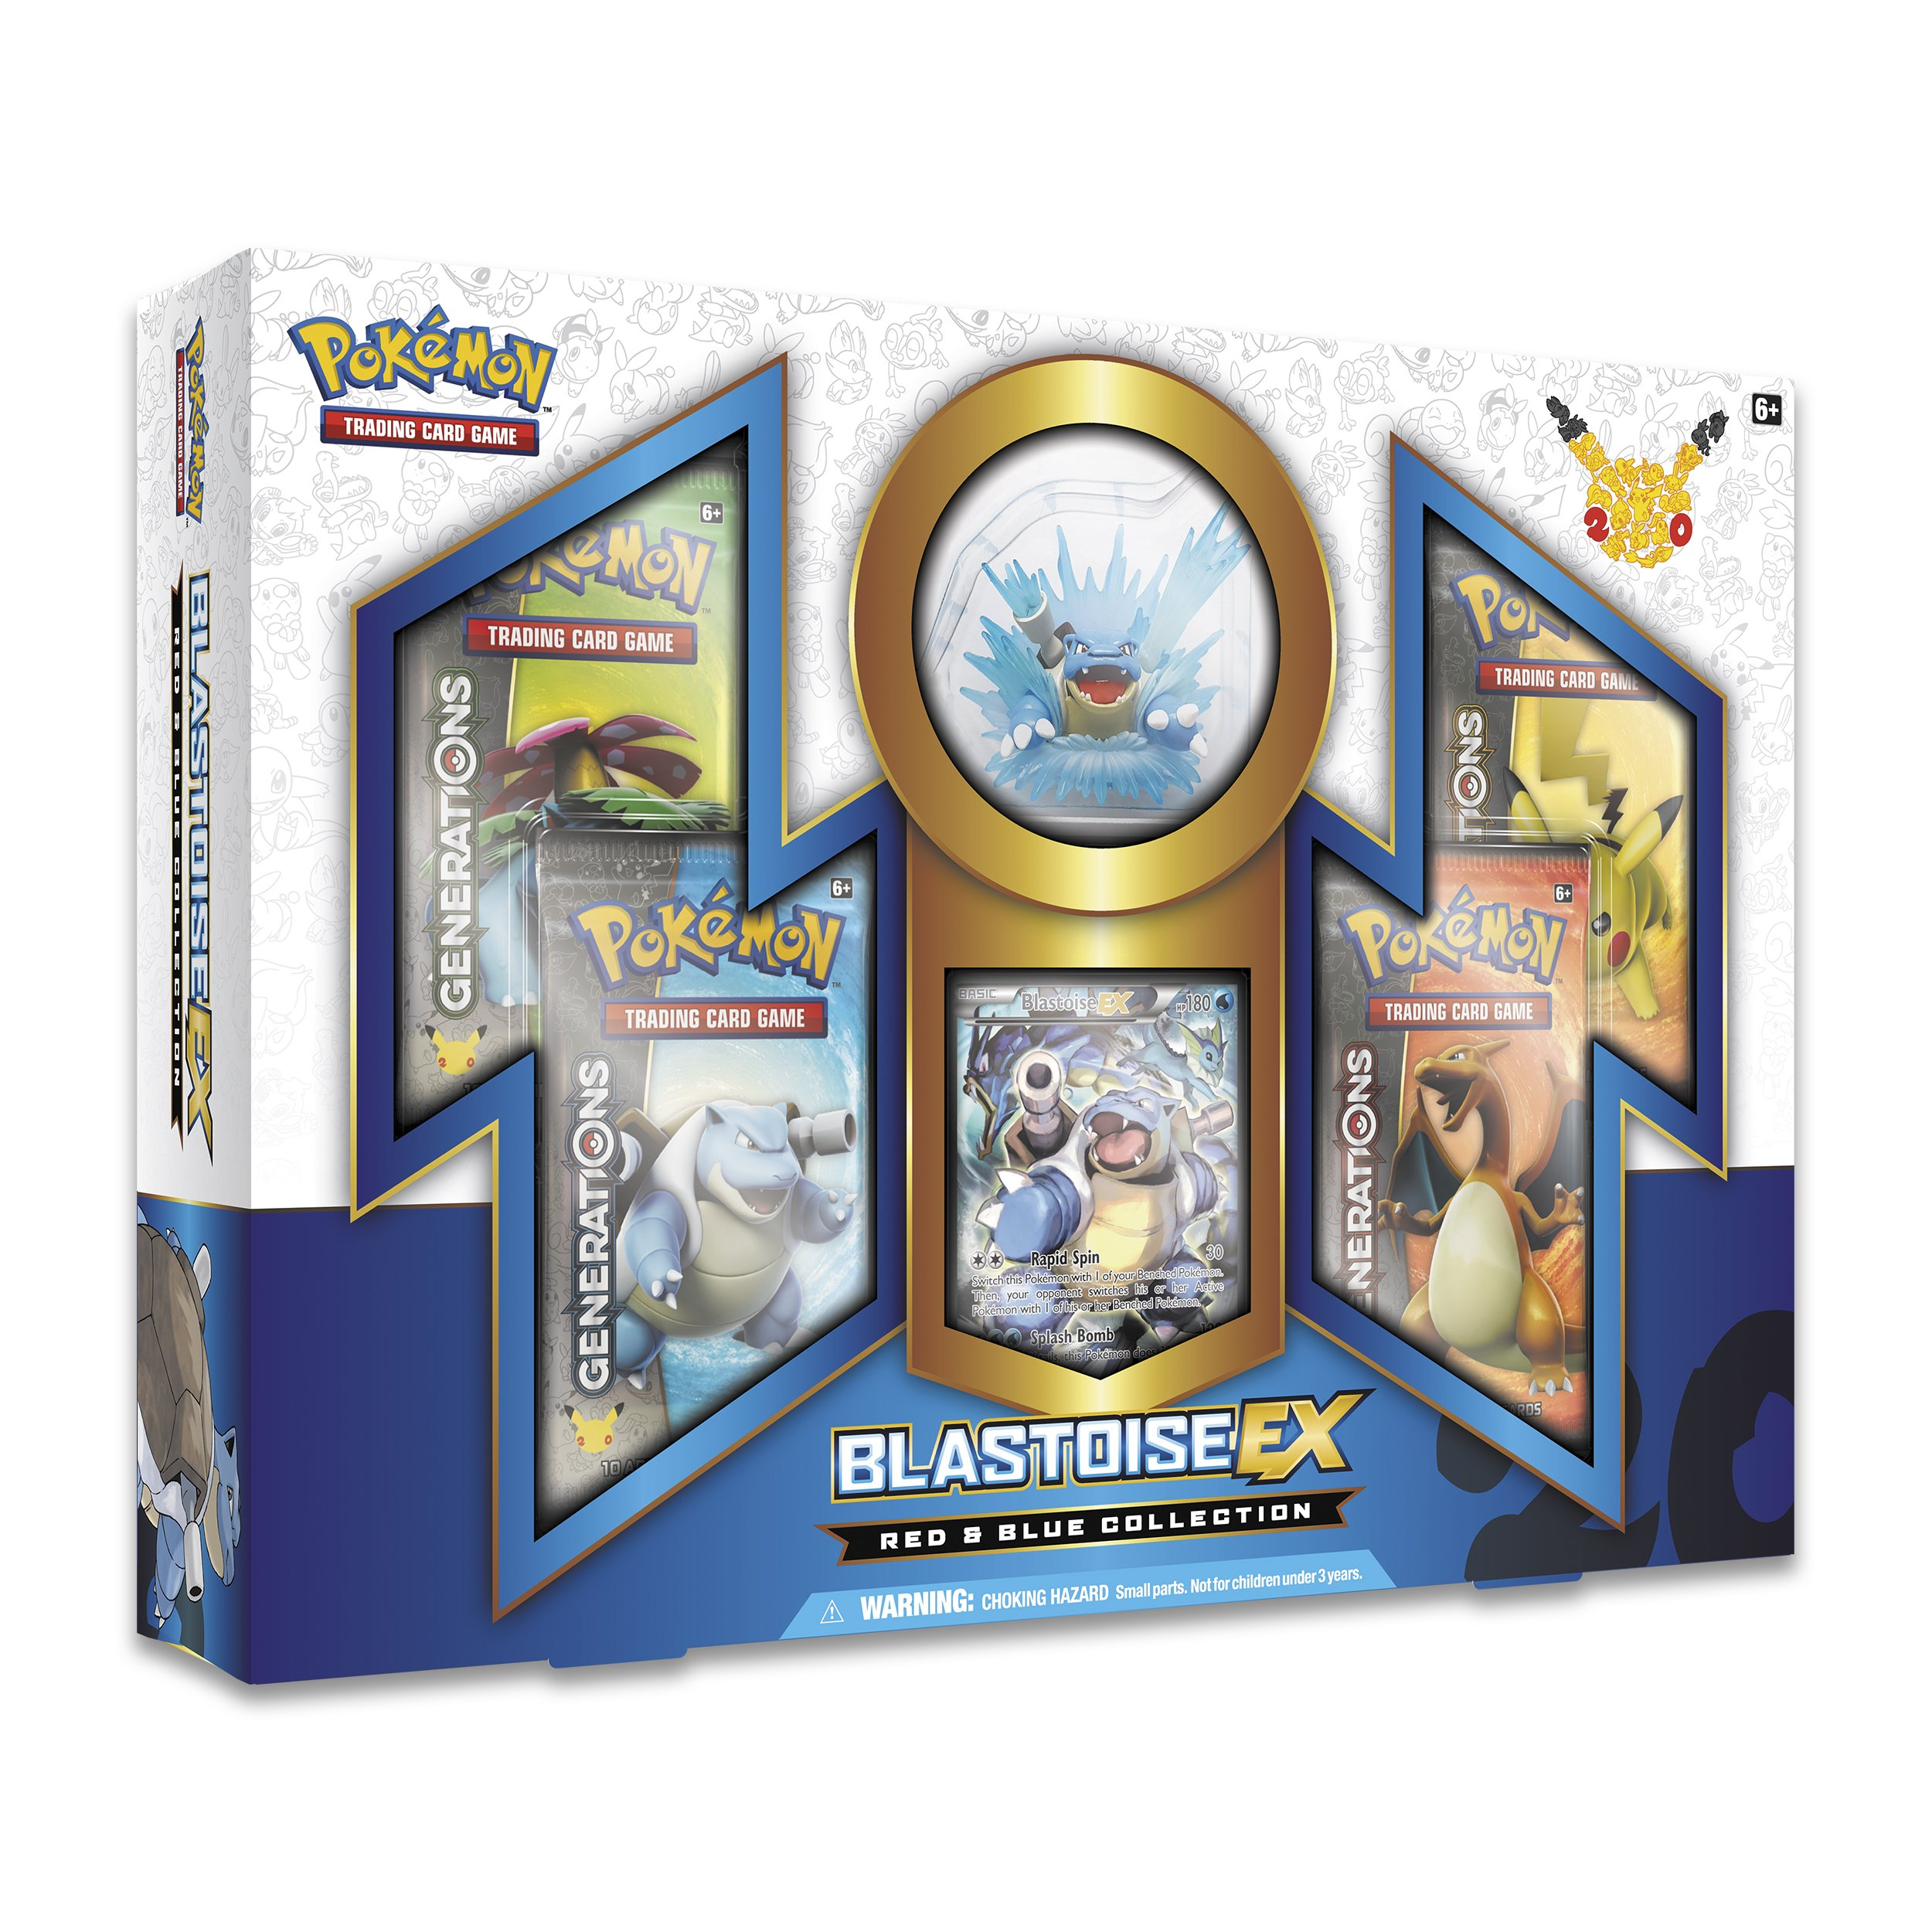 Pokemon Red & Blue Collection: Blastoise EX